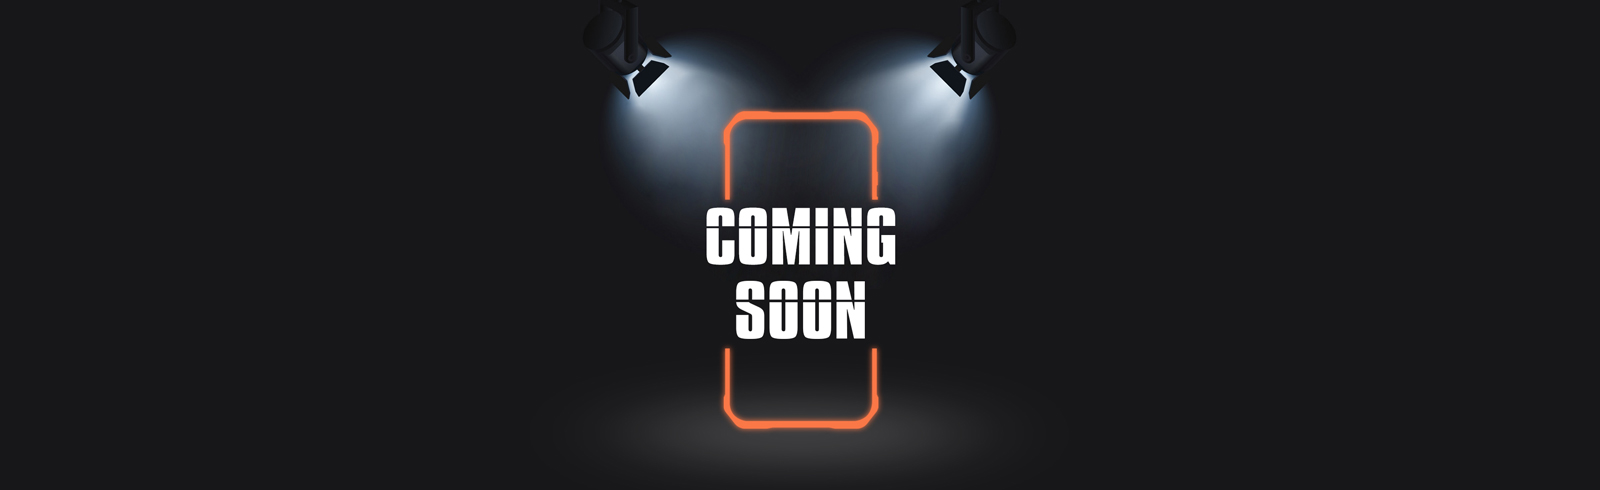 Doogee is prepping its first 5G smartphone, probably